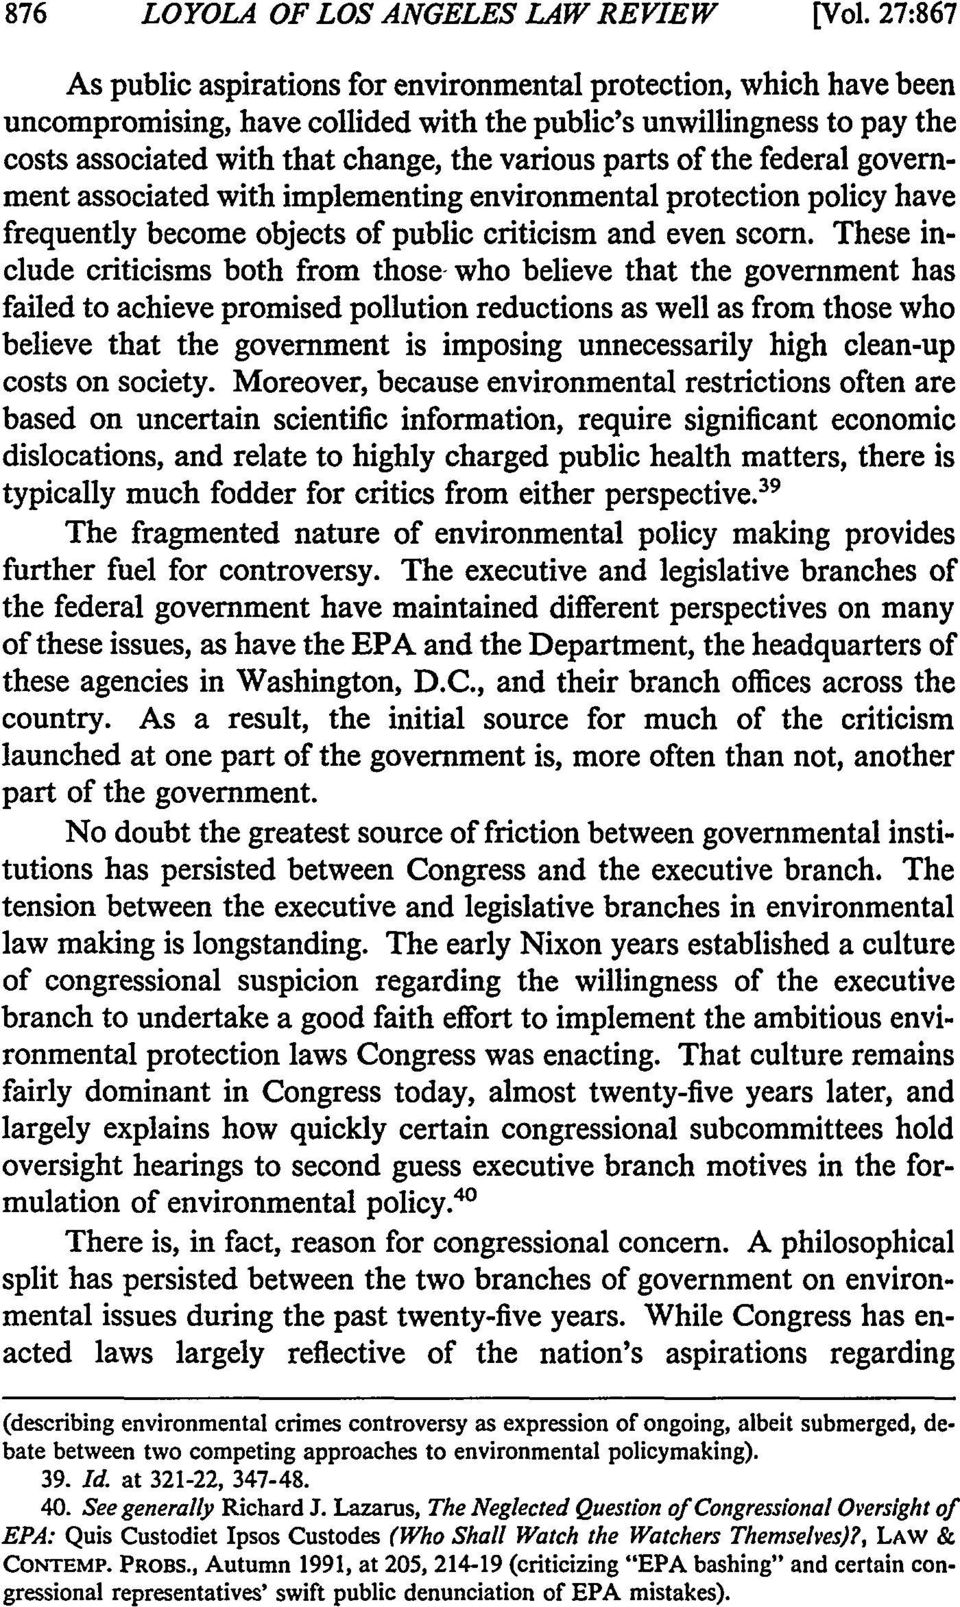 parts of the federal government associated with implementing environmental protection policy have frequently become objects of public criticism and even scorn.